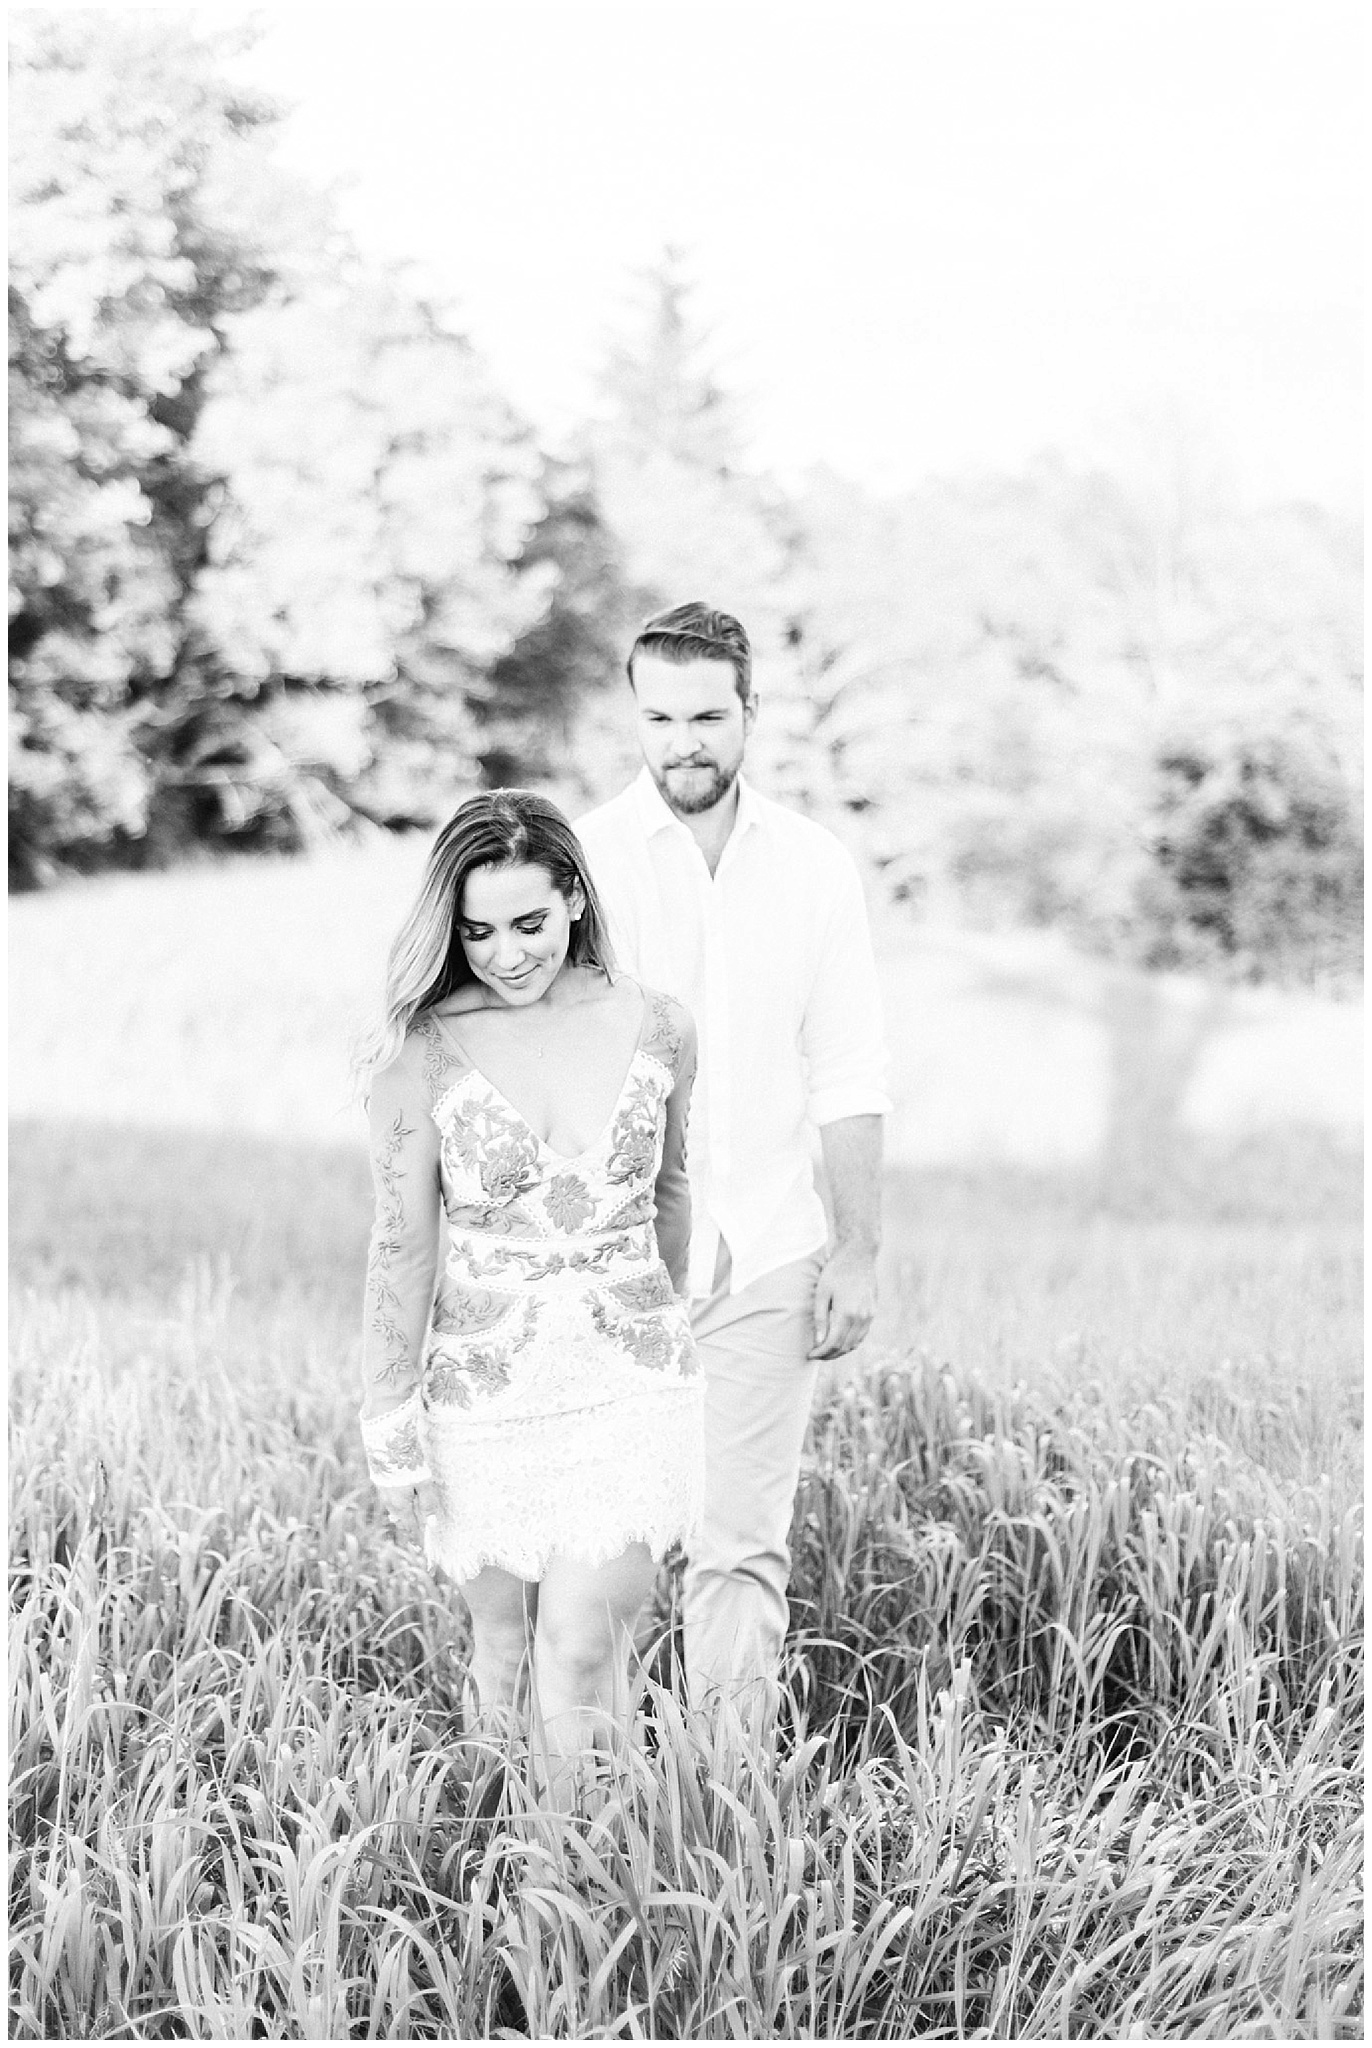 Scotsdale Farm Engagement Session in Georgetown, Ontario by Jenn Kavanagh Photography